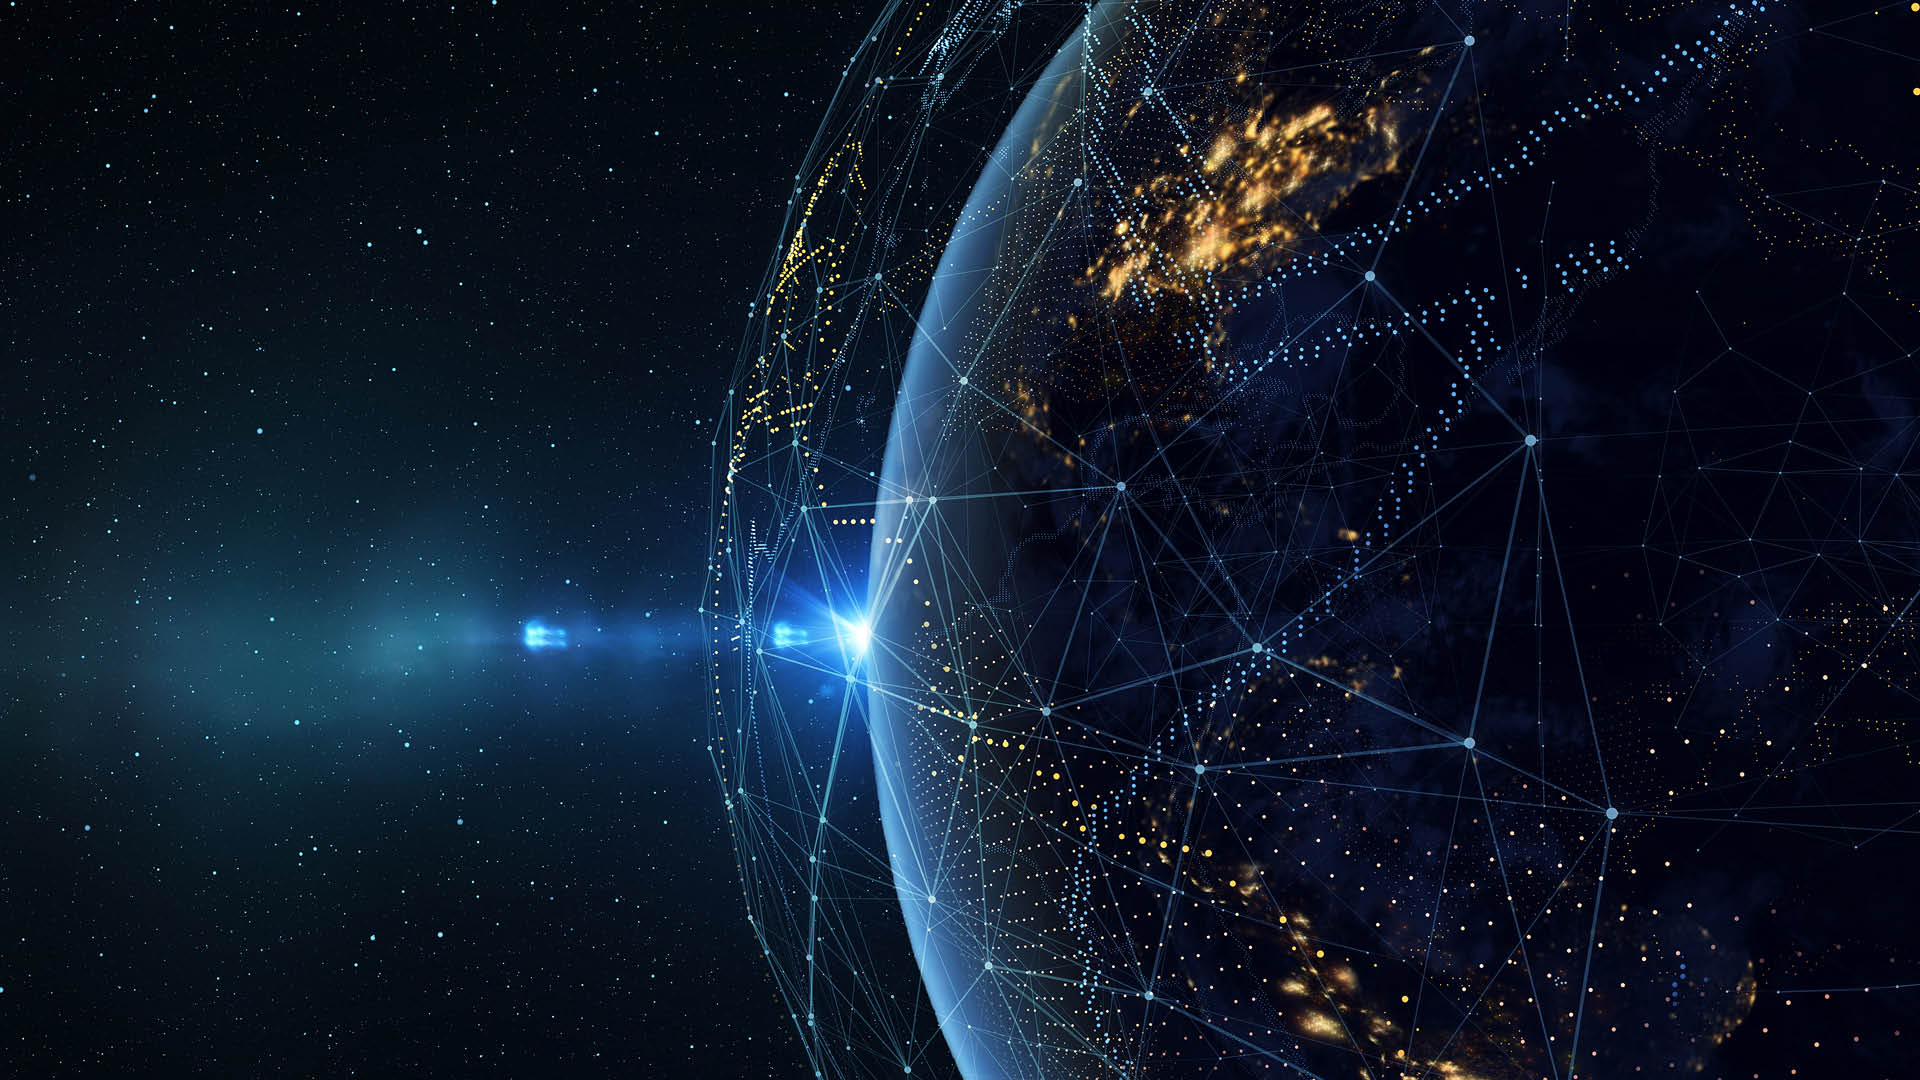 Earth from space at night with a digital communication system